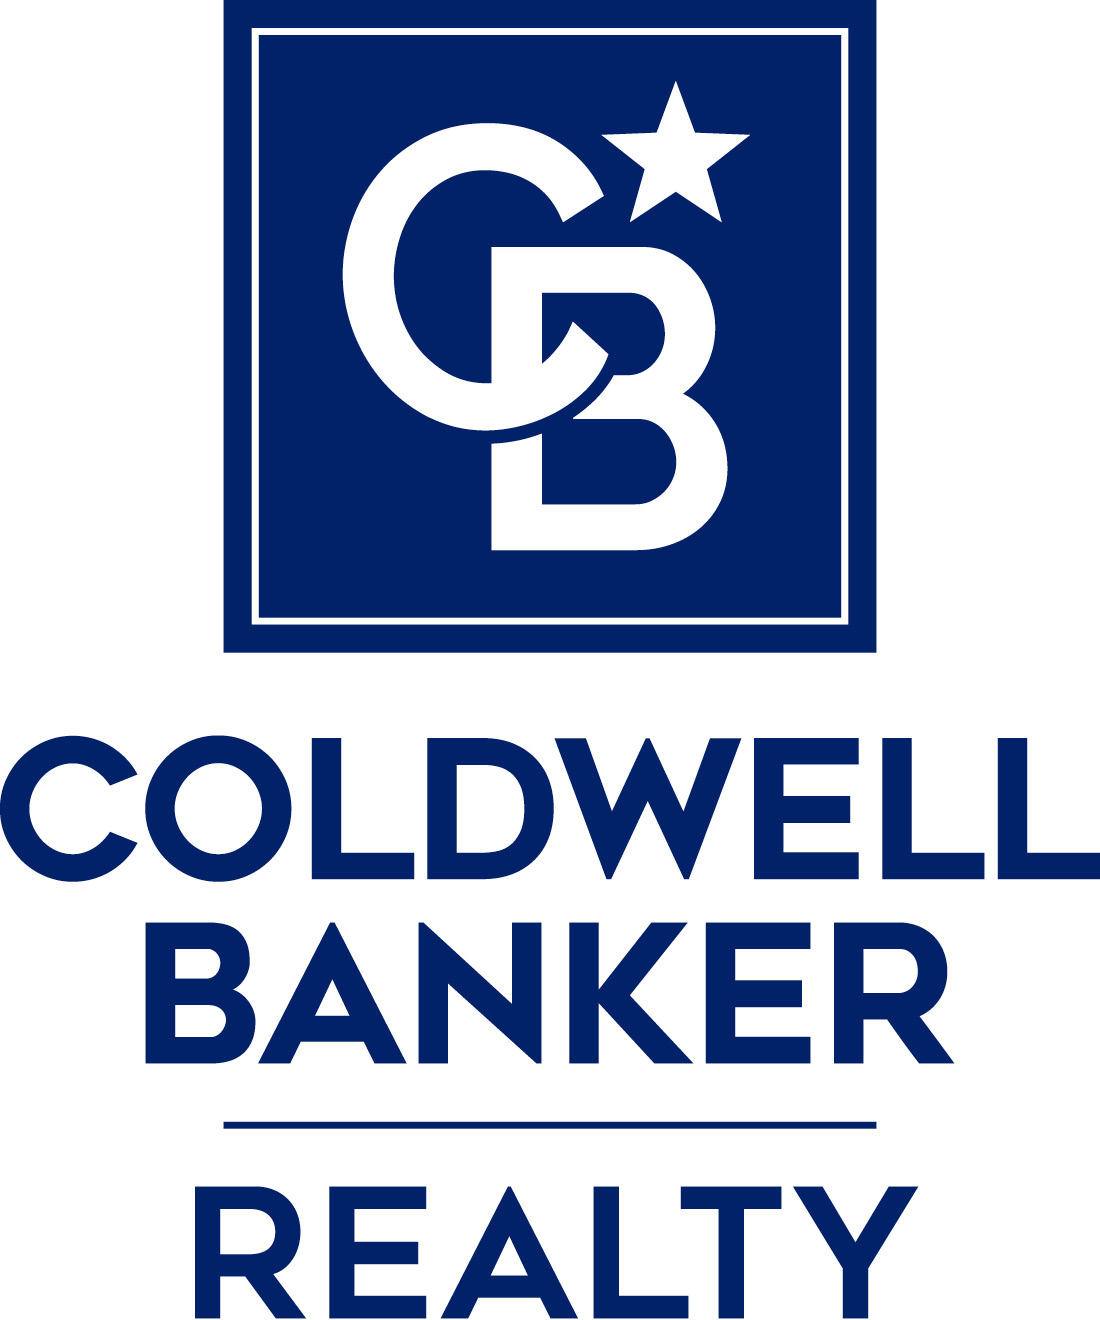 Coldwell Banker Realty - Sudbury